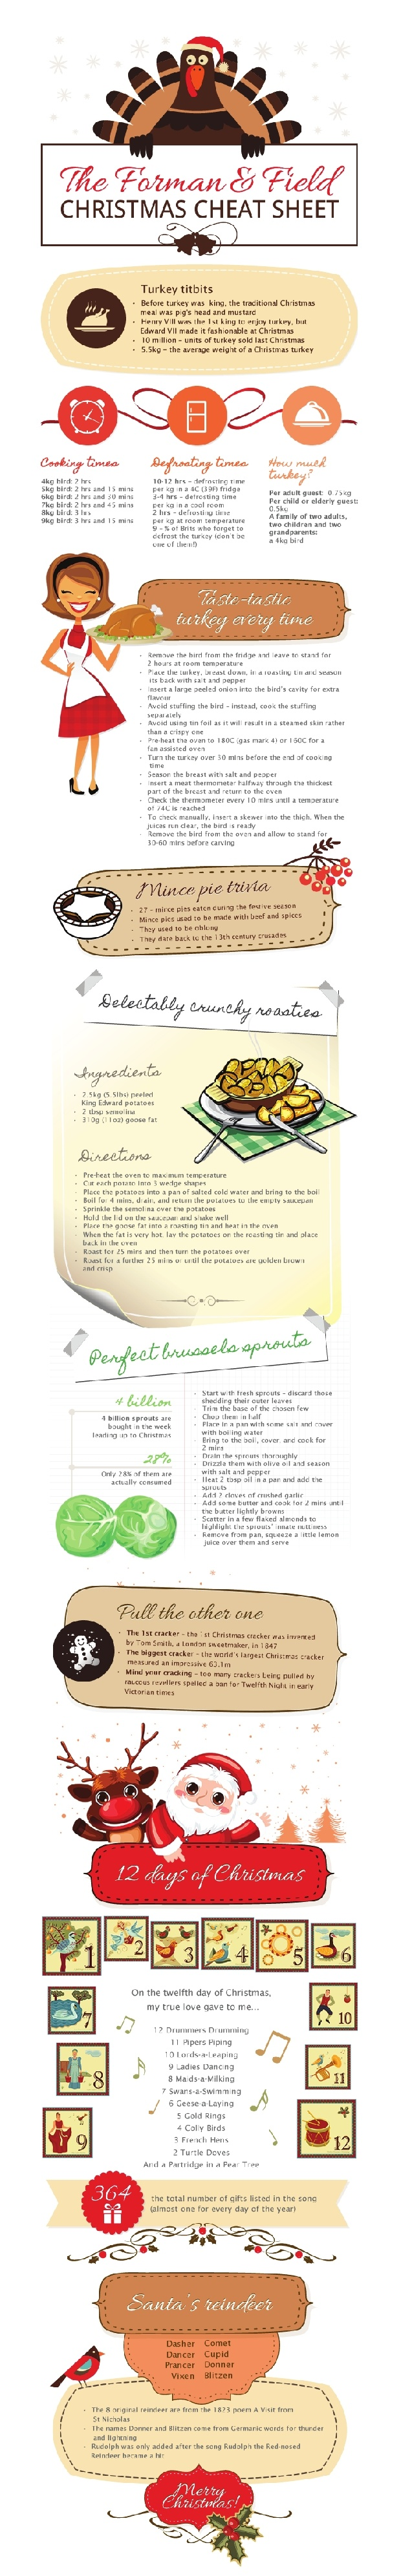 Cooking Christmas dinner is no easy feat. In fact, it takes the average person 47 years to perfect it without incident. For those who have yet to master the art of Yuletide feast-making, here are some insider secrets for a mishap-free meal. Introducing the Forman & Field Christmas Cheat Sheet.